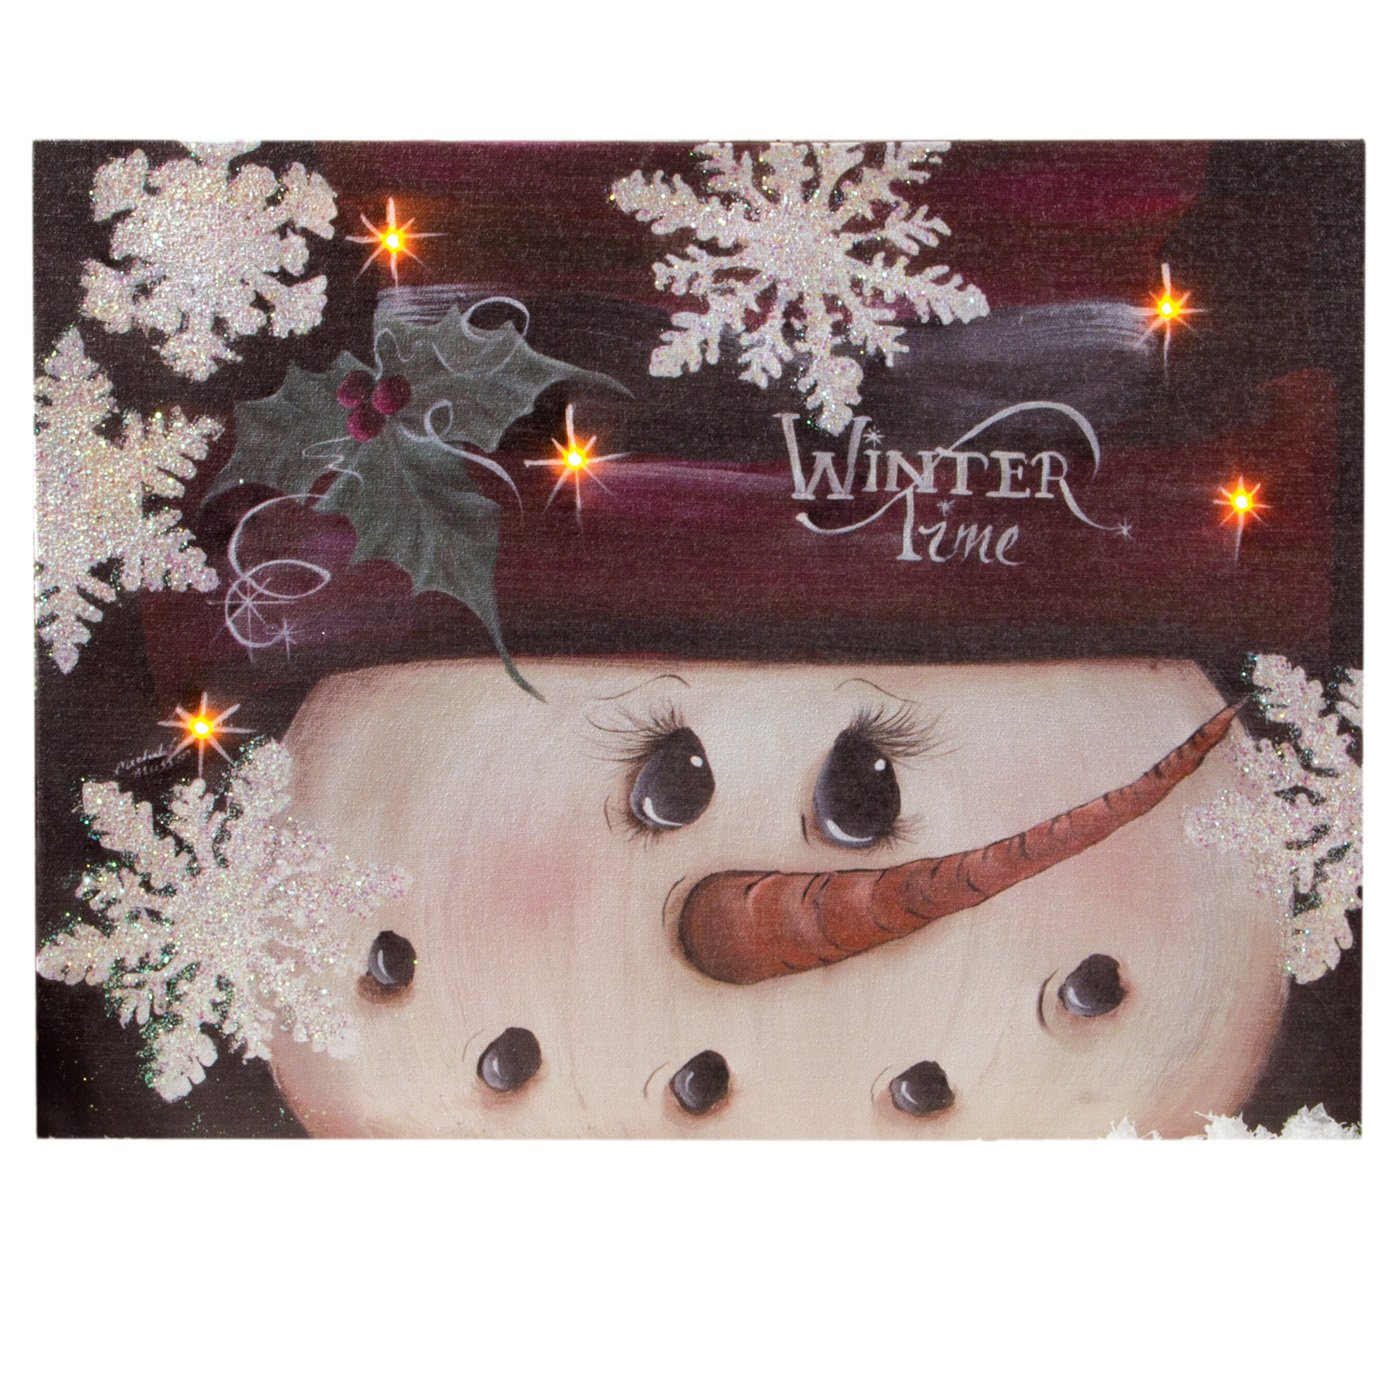 Ohio Wholesale Winter Time Canvas Radiance Lighted Wall Art X46490